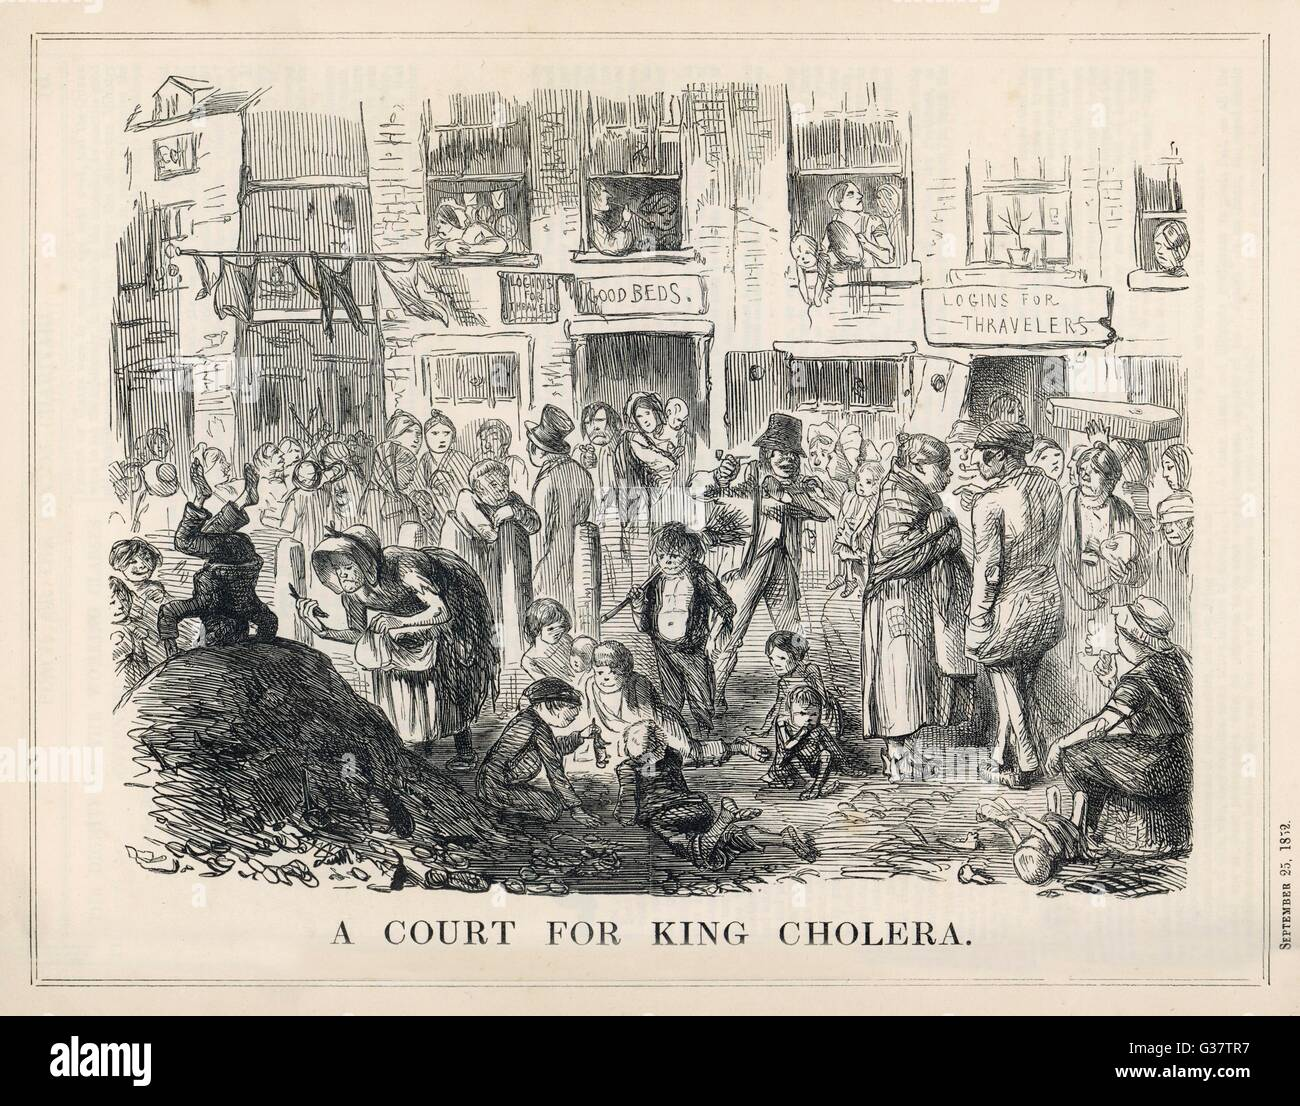 'A COURT FOR KING CHOLERA'          Date: 1852 - Stock Image